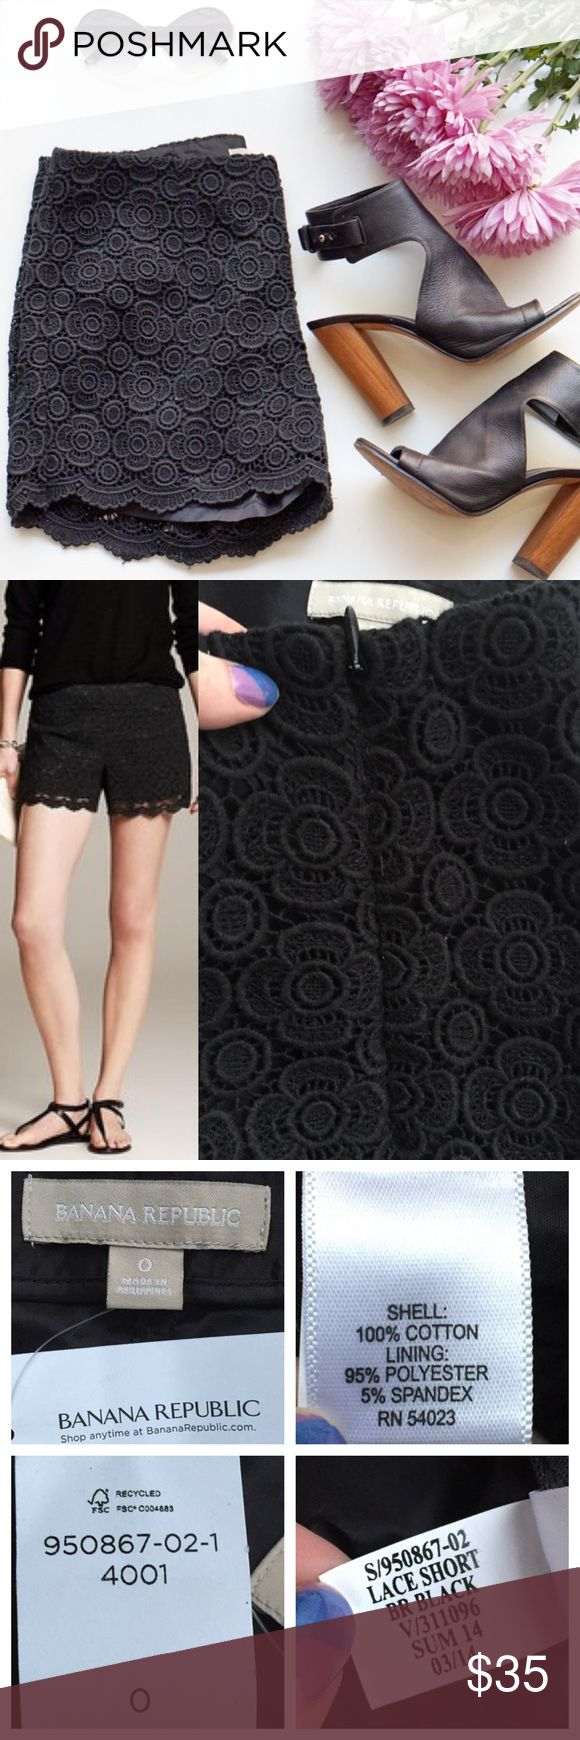 "🆕NWT Banana Republic Black Lace Scalloped Shorts Brand new with tag Banana Republic black shorts. Lace design, fully lined. Scalloped hemline. Hidden side zip. Size 0, runs slightly large. Approx 15"" across waist lying flat, 9"" rise, 4"" inseam. Model photo credit Banana Republic. ❌No trades❌Price firm unless bundled. Banana Republic Shorts"